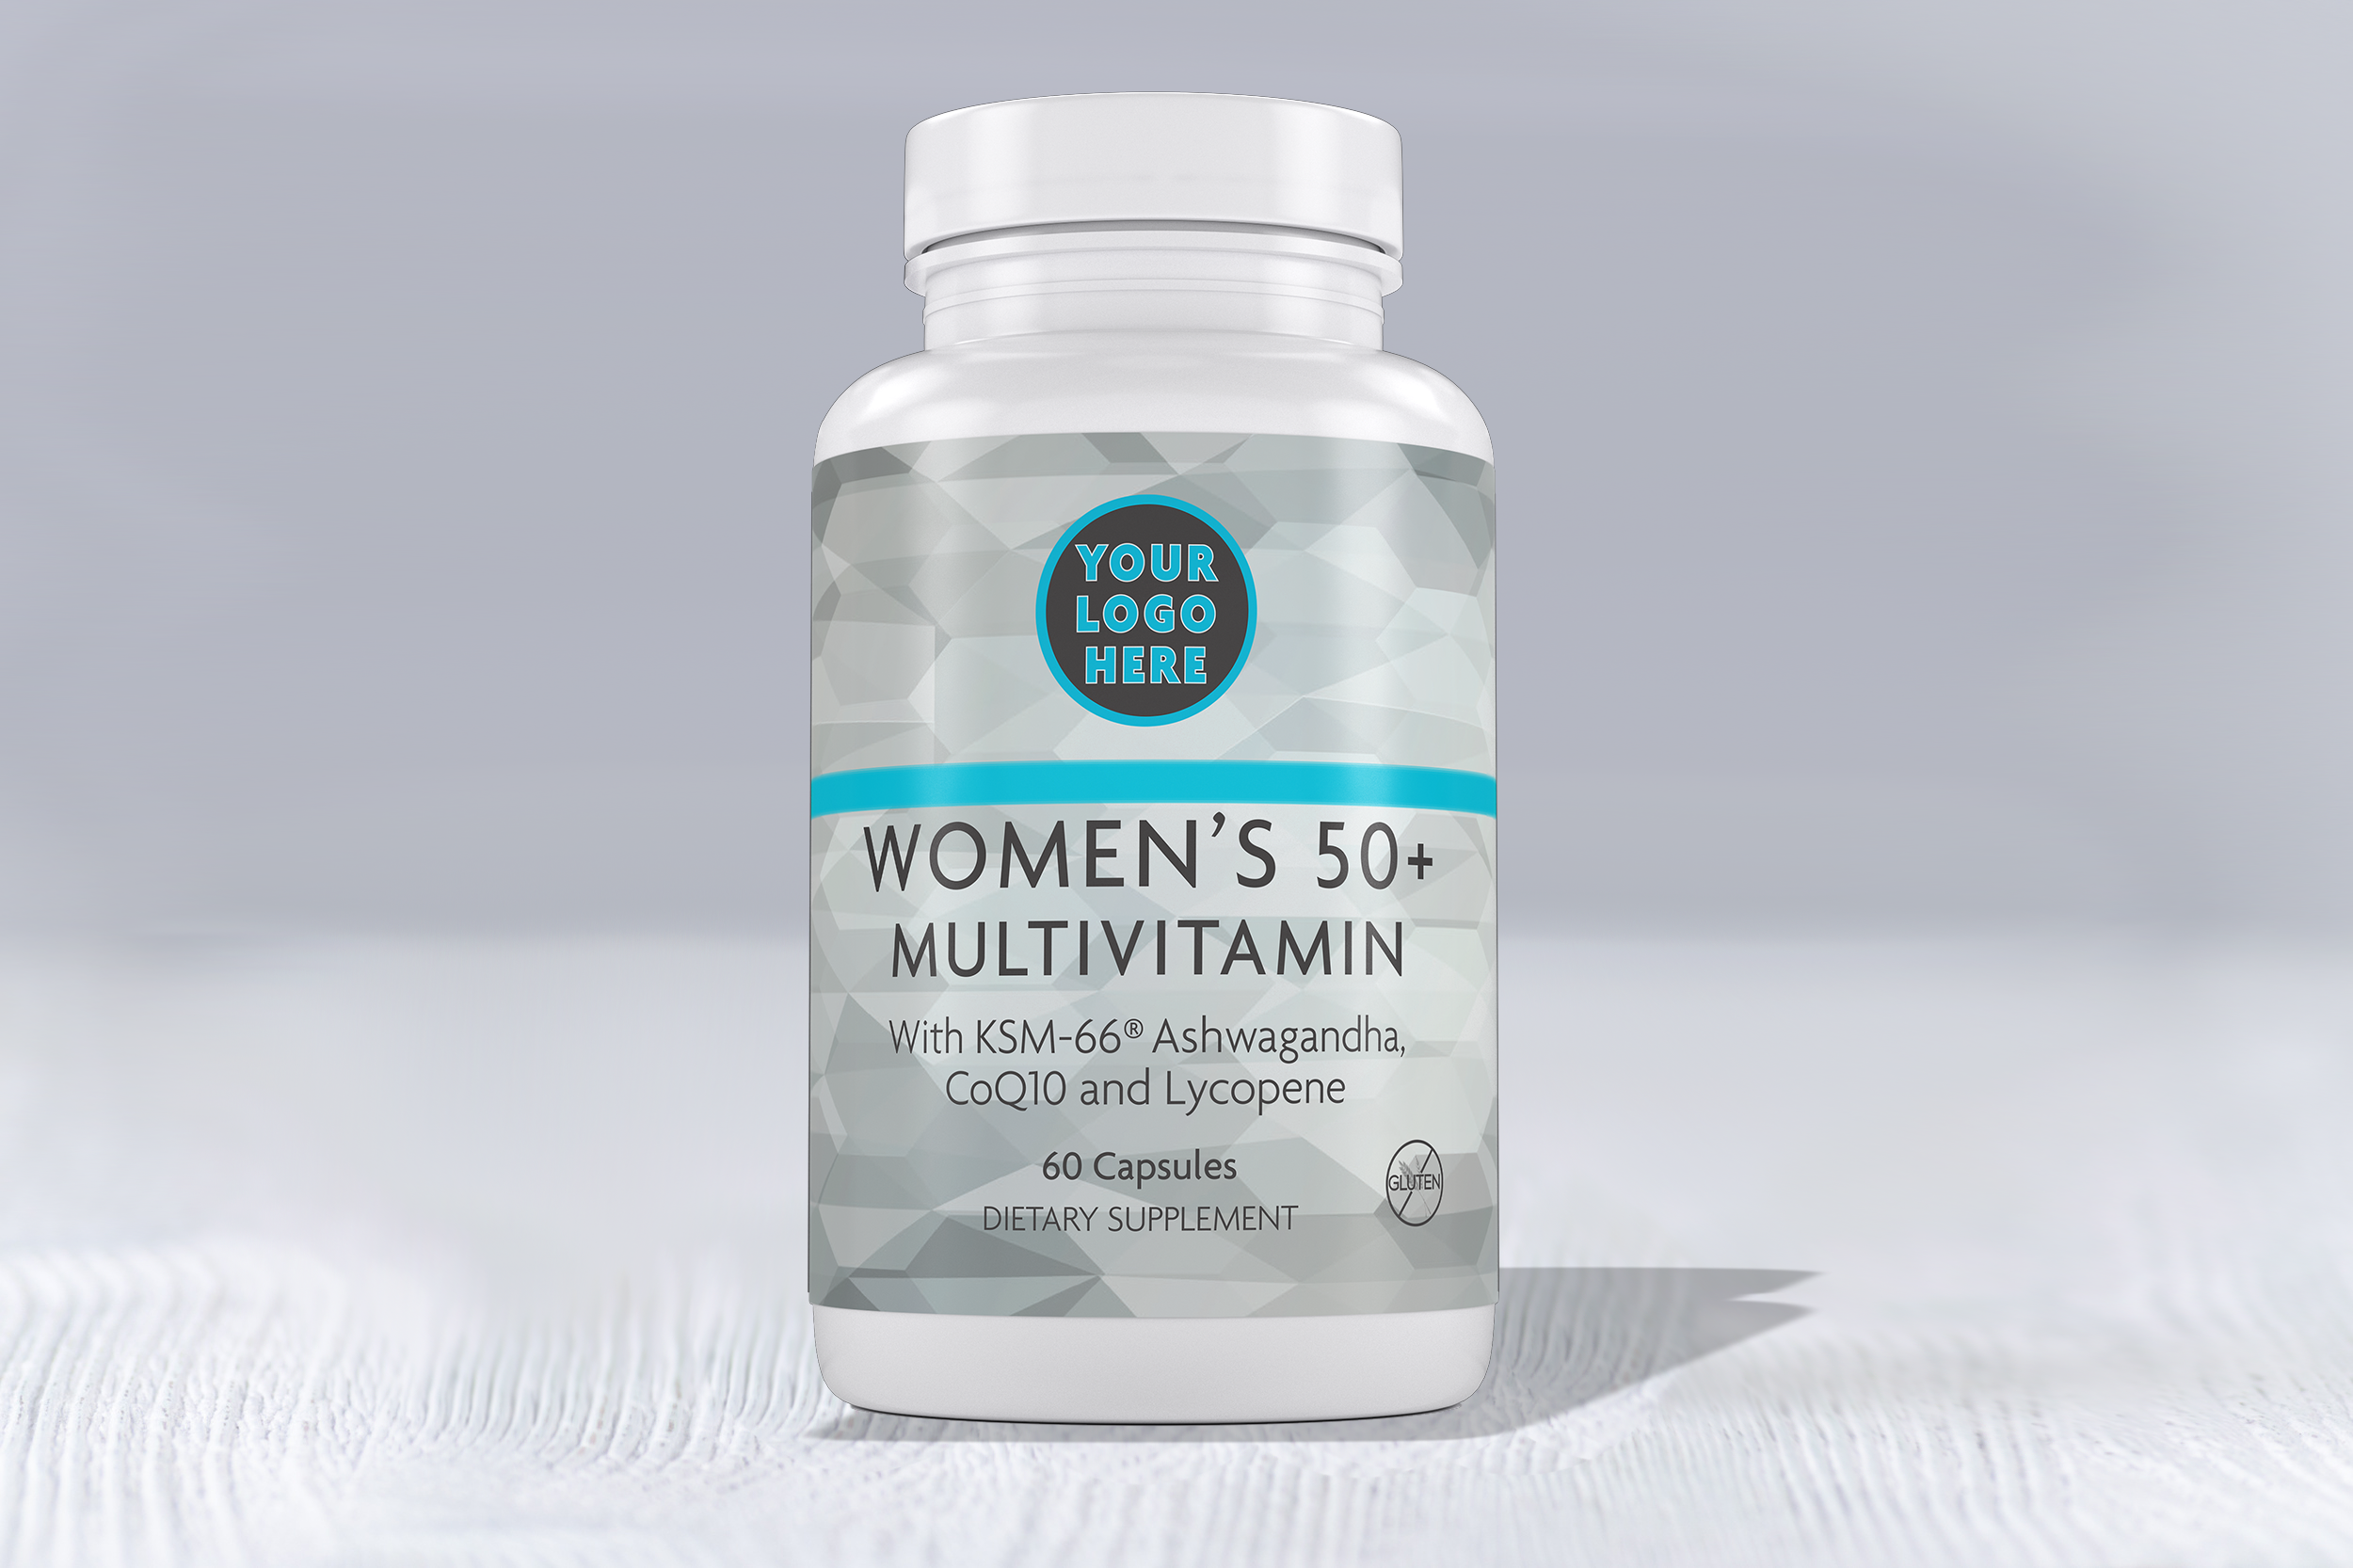 Women's 50+ Multivitamin Capsules